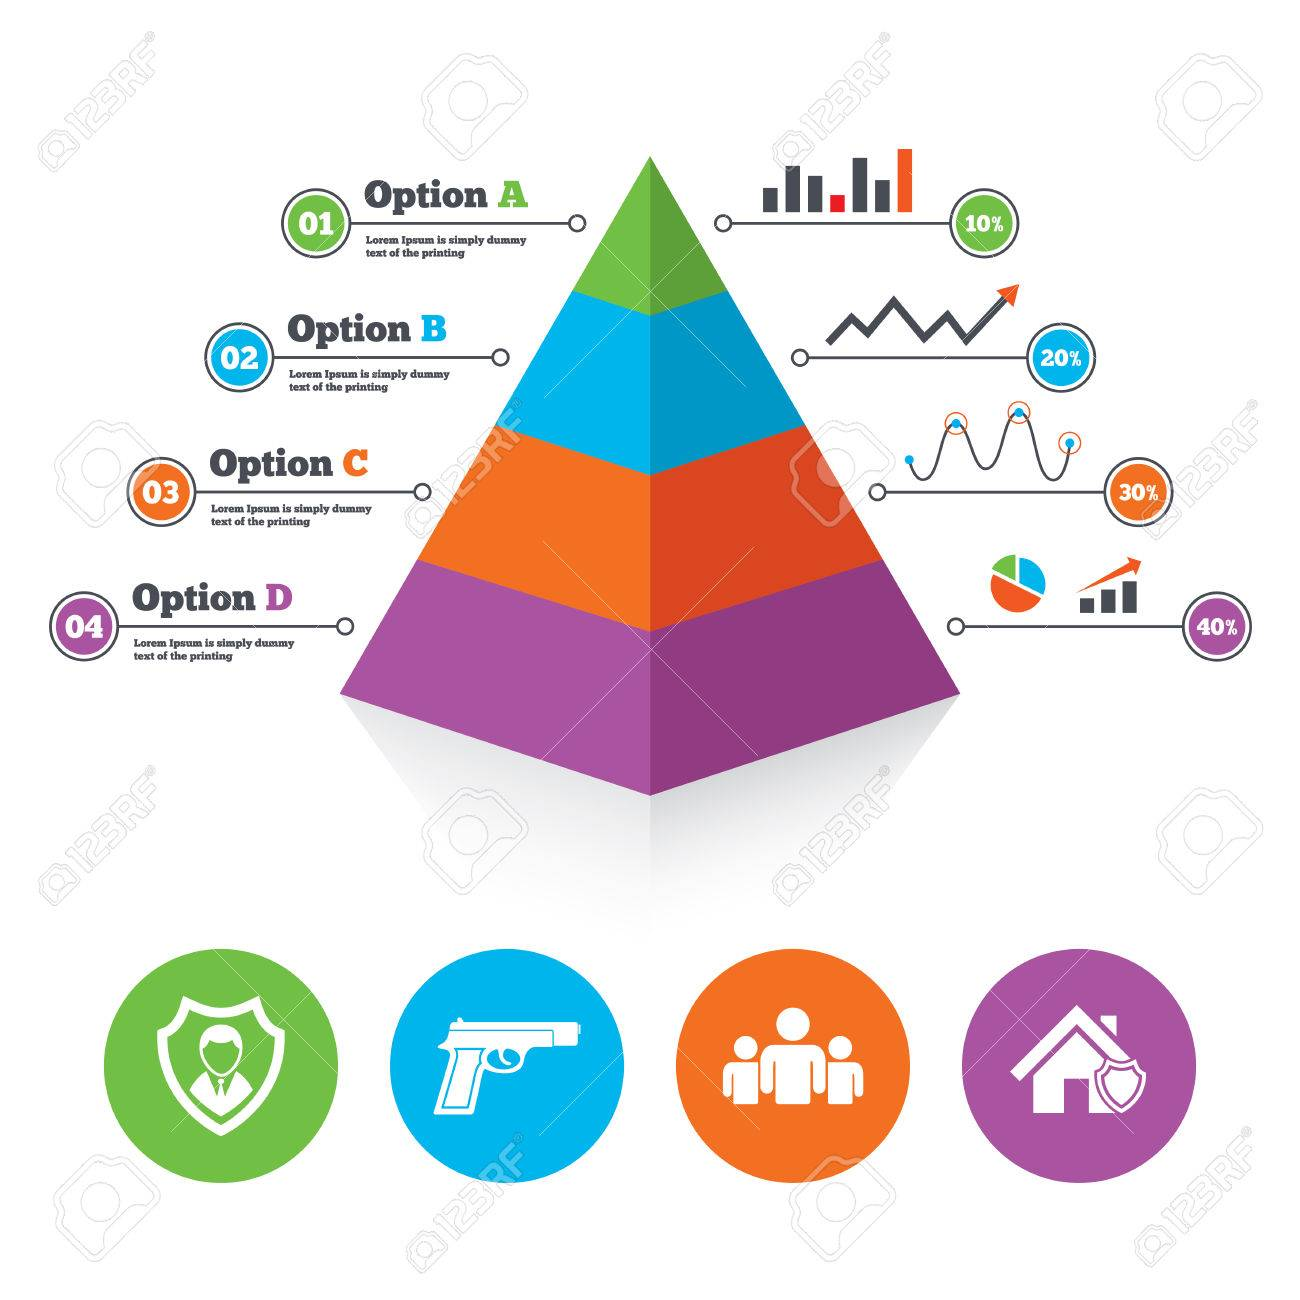 Pyramid chart template security agency icons home shield pyramid chart template security agency icons home shield protection symbols gun weapon sign biocorpaavc Images